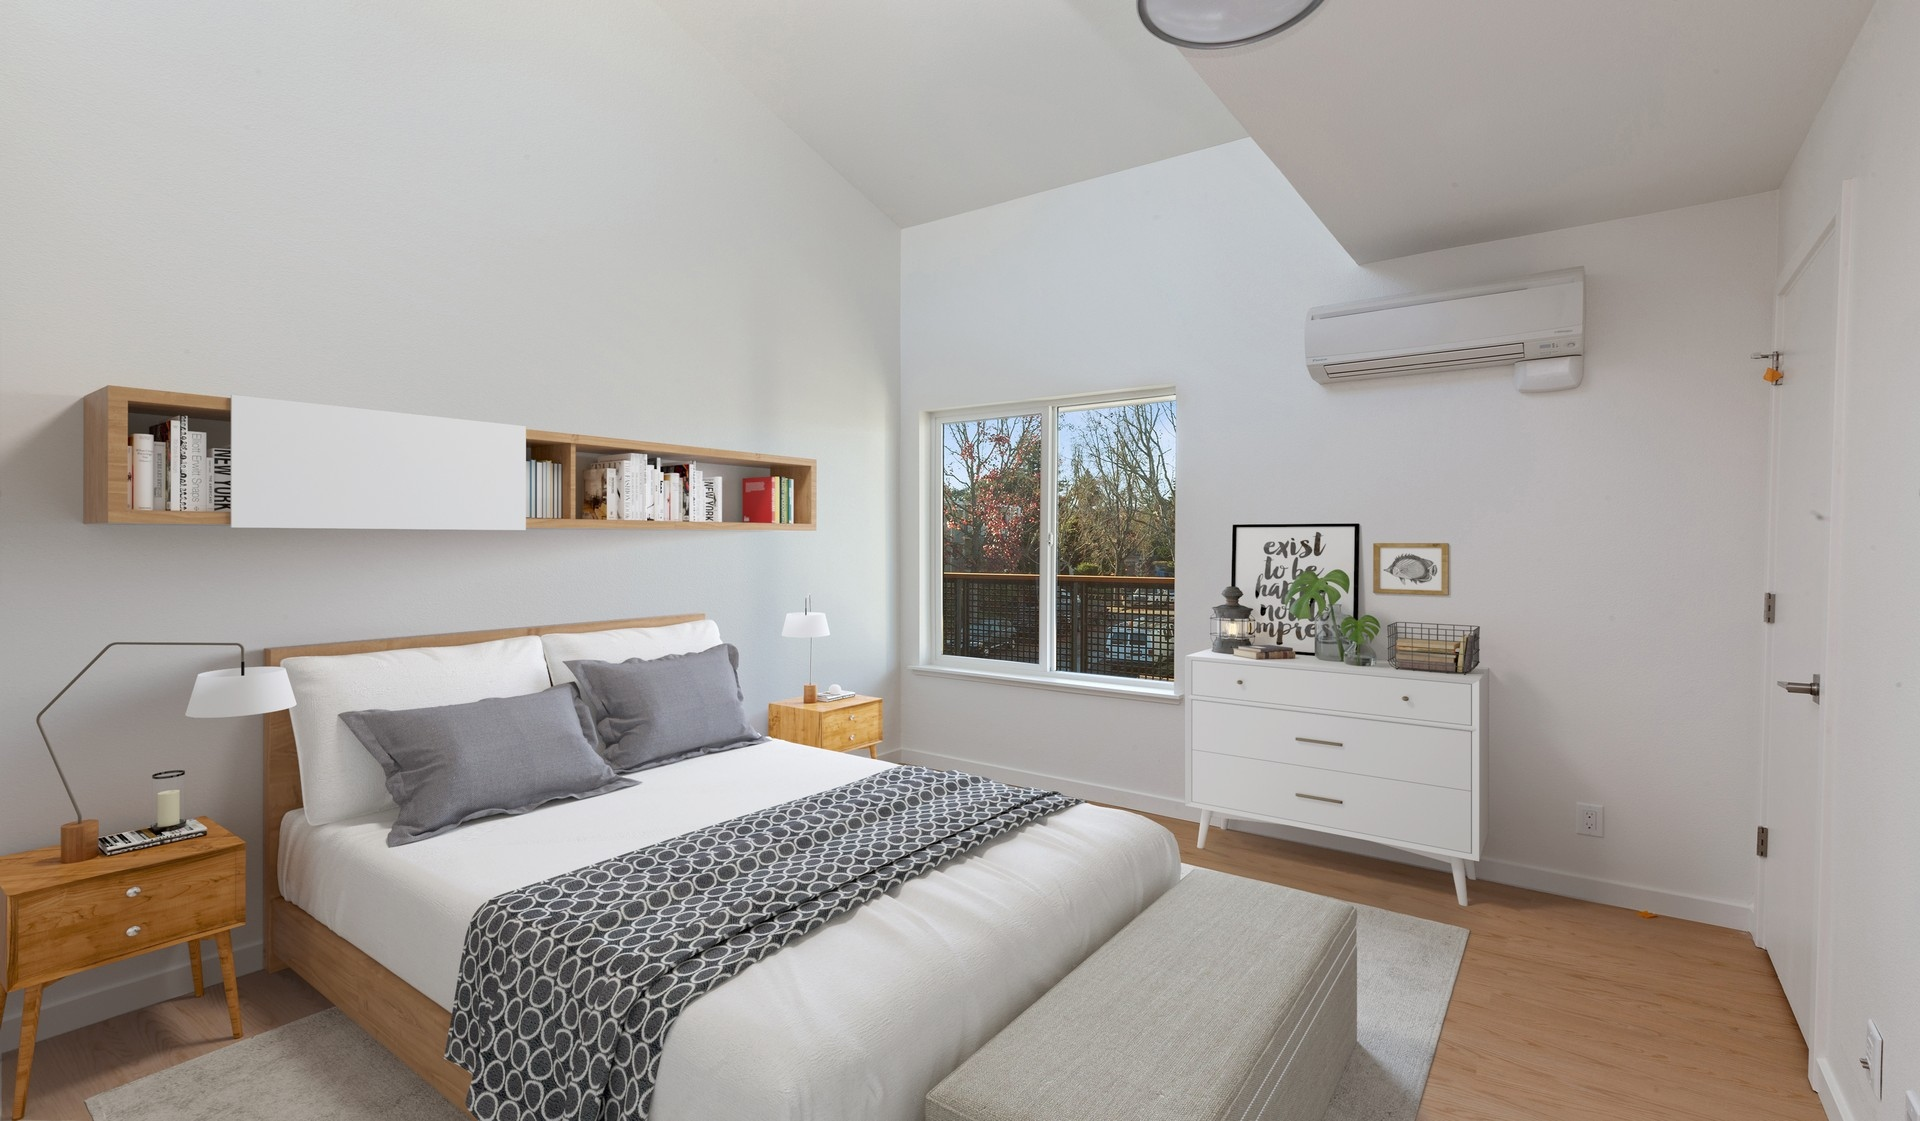 707 Leahy - Redwood City - bed